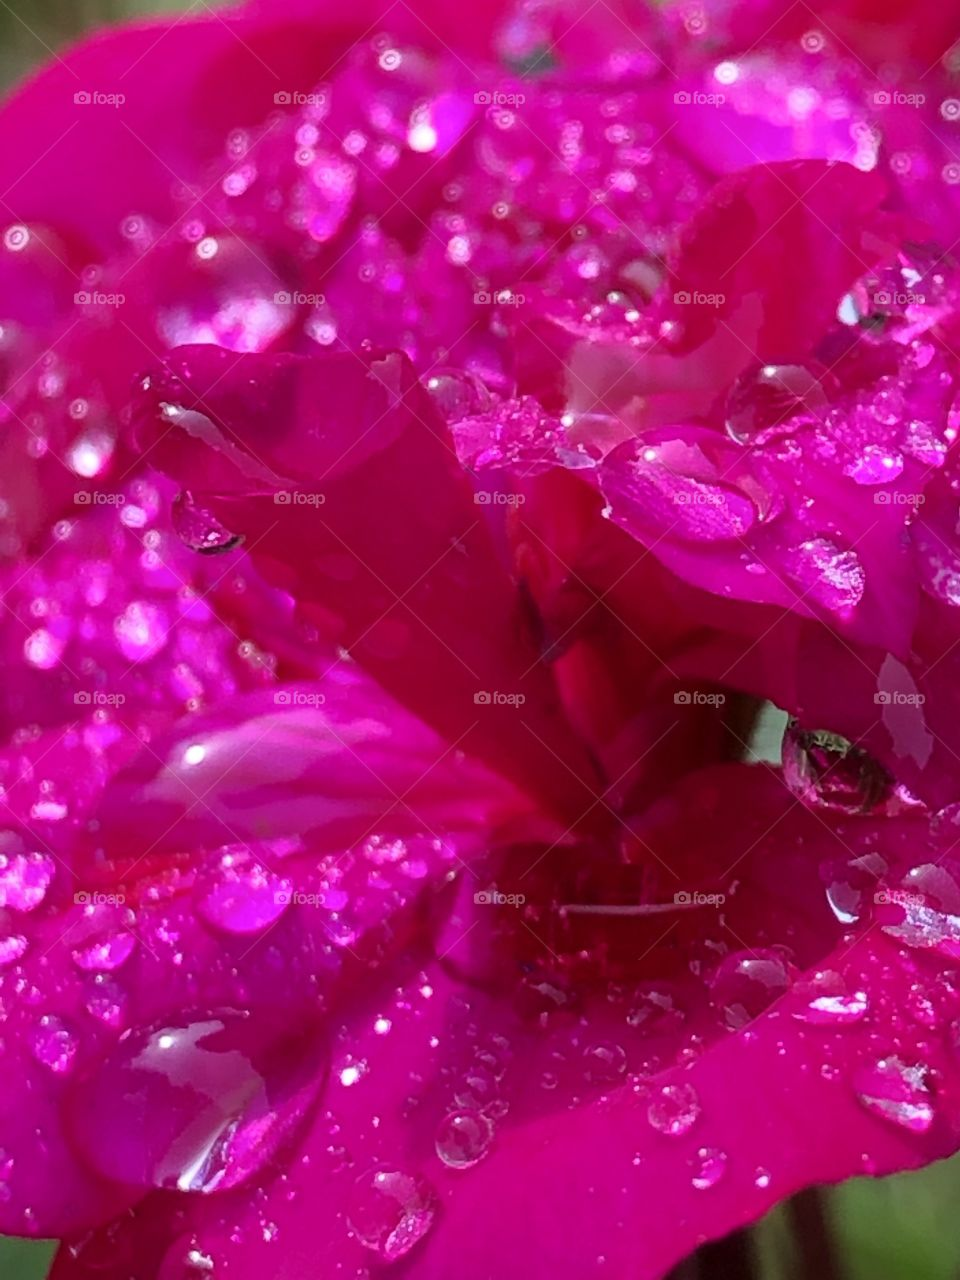 Beautiful Colourful Vibrant Dark Pink Geranium Flowers Close With Crystal Rain Drops Morning Photography